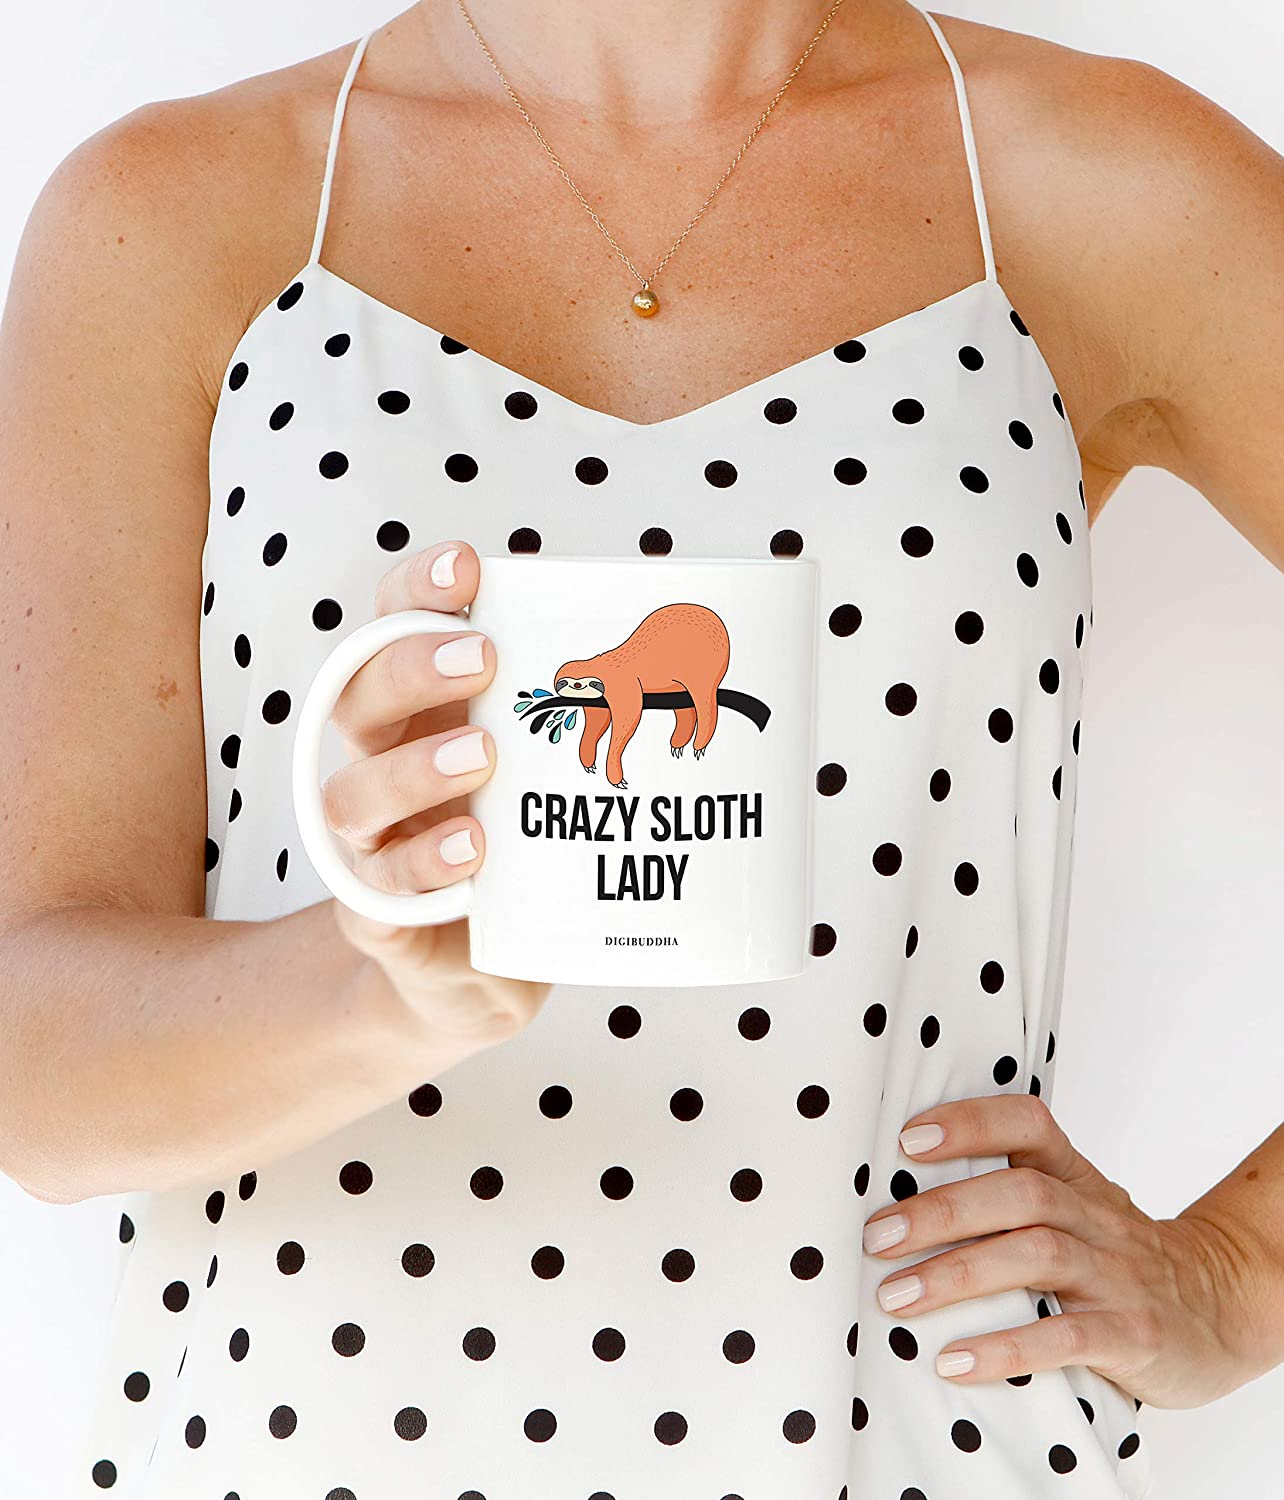 CRAZY SLOTH LADY Coffee Mug Cute Gift Idea for Rain Forest Nature Animal Lover Birthday Christmas All Occasion Present Friend Relative Office Coworker 11oz Ceramic Beverage Tea Cup Digibuddha DM0650